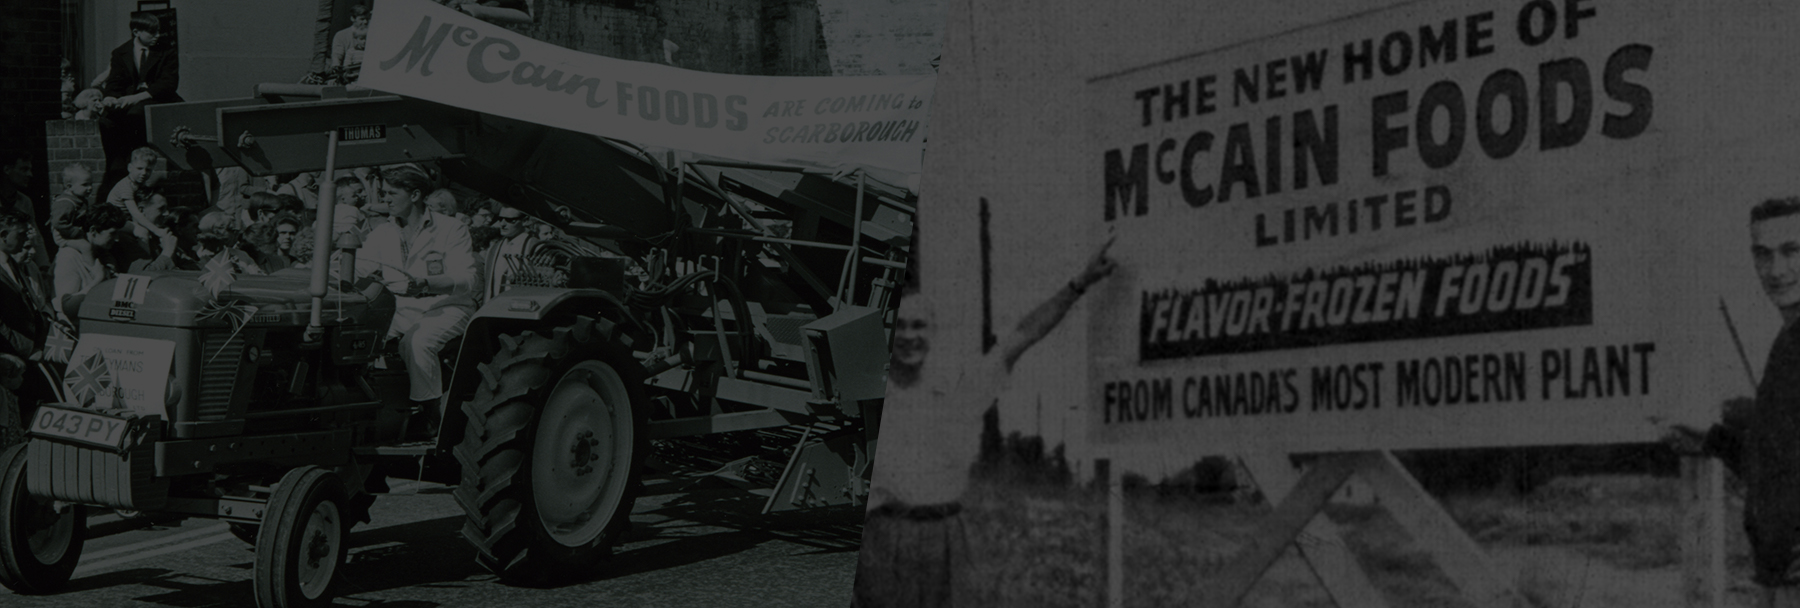 Our History | McCain Foods